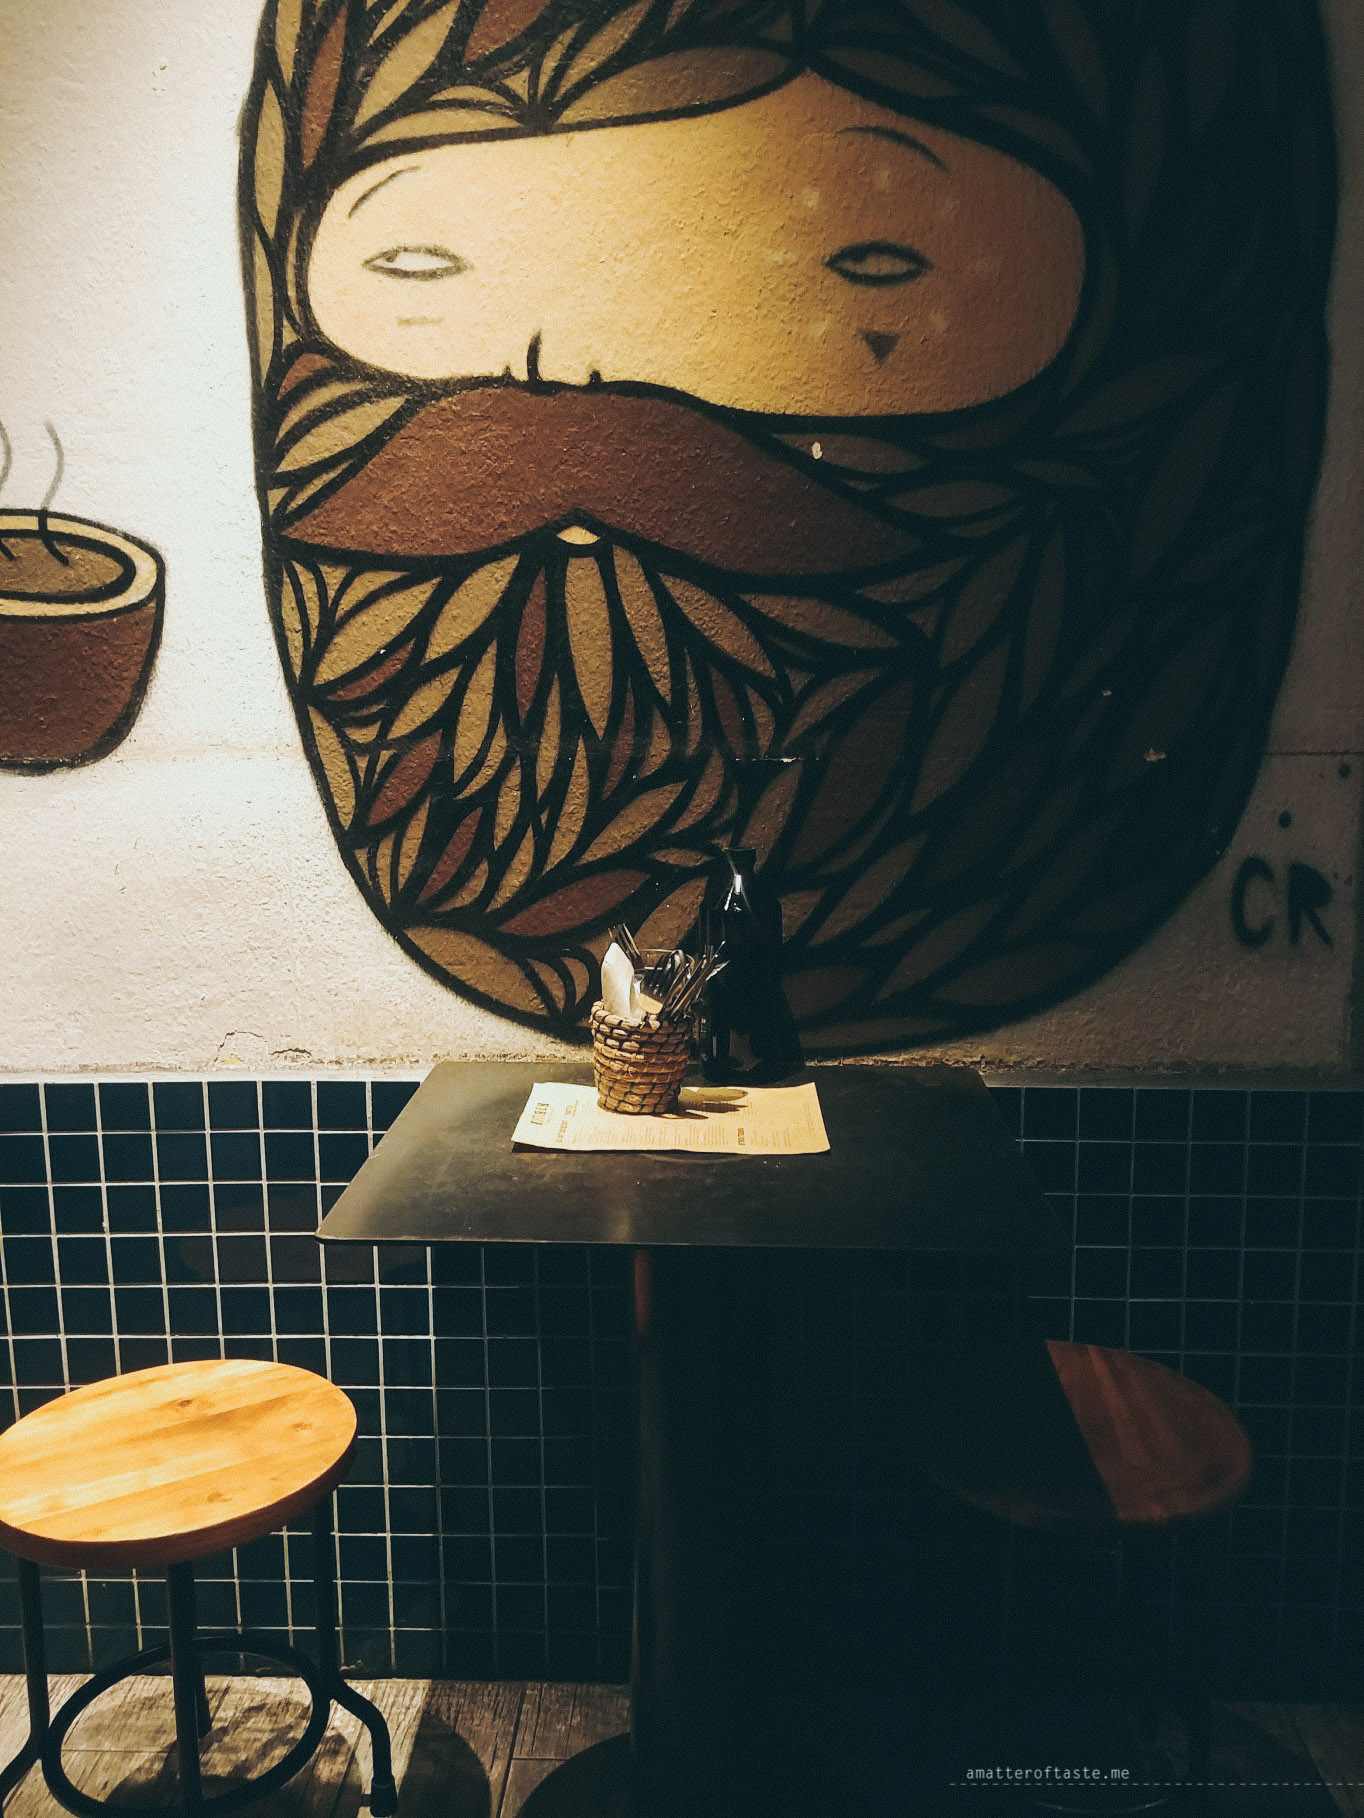 14-tiong-bahru-coffee-fortyhands